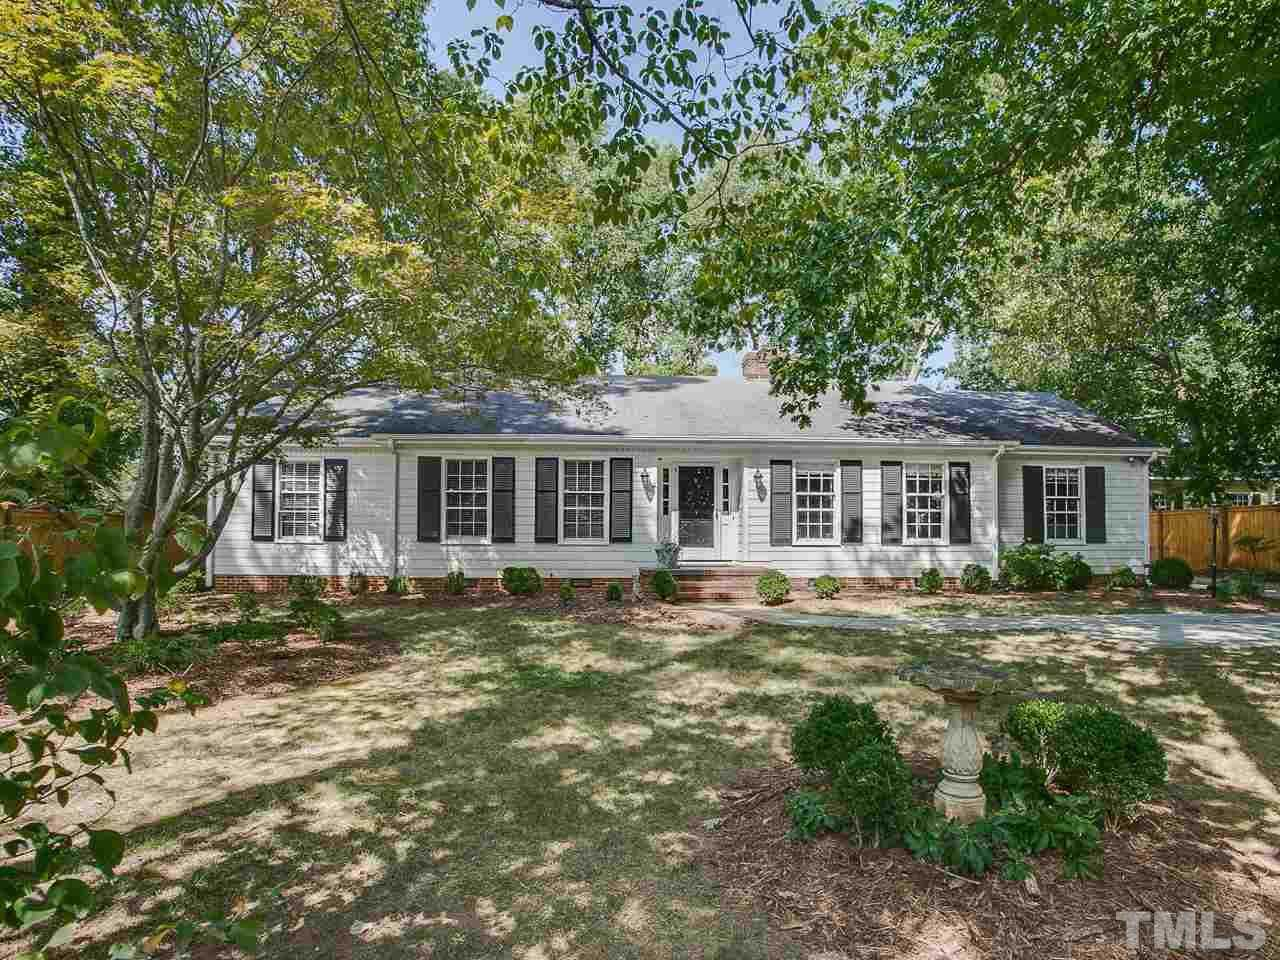 $365,000 - 3Br/2Ba -  for Sale in Not In A Subdivision, Raleigh